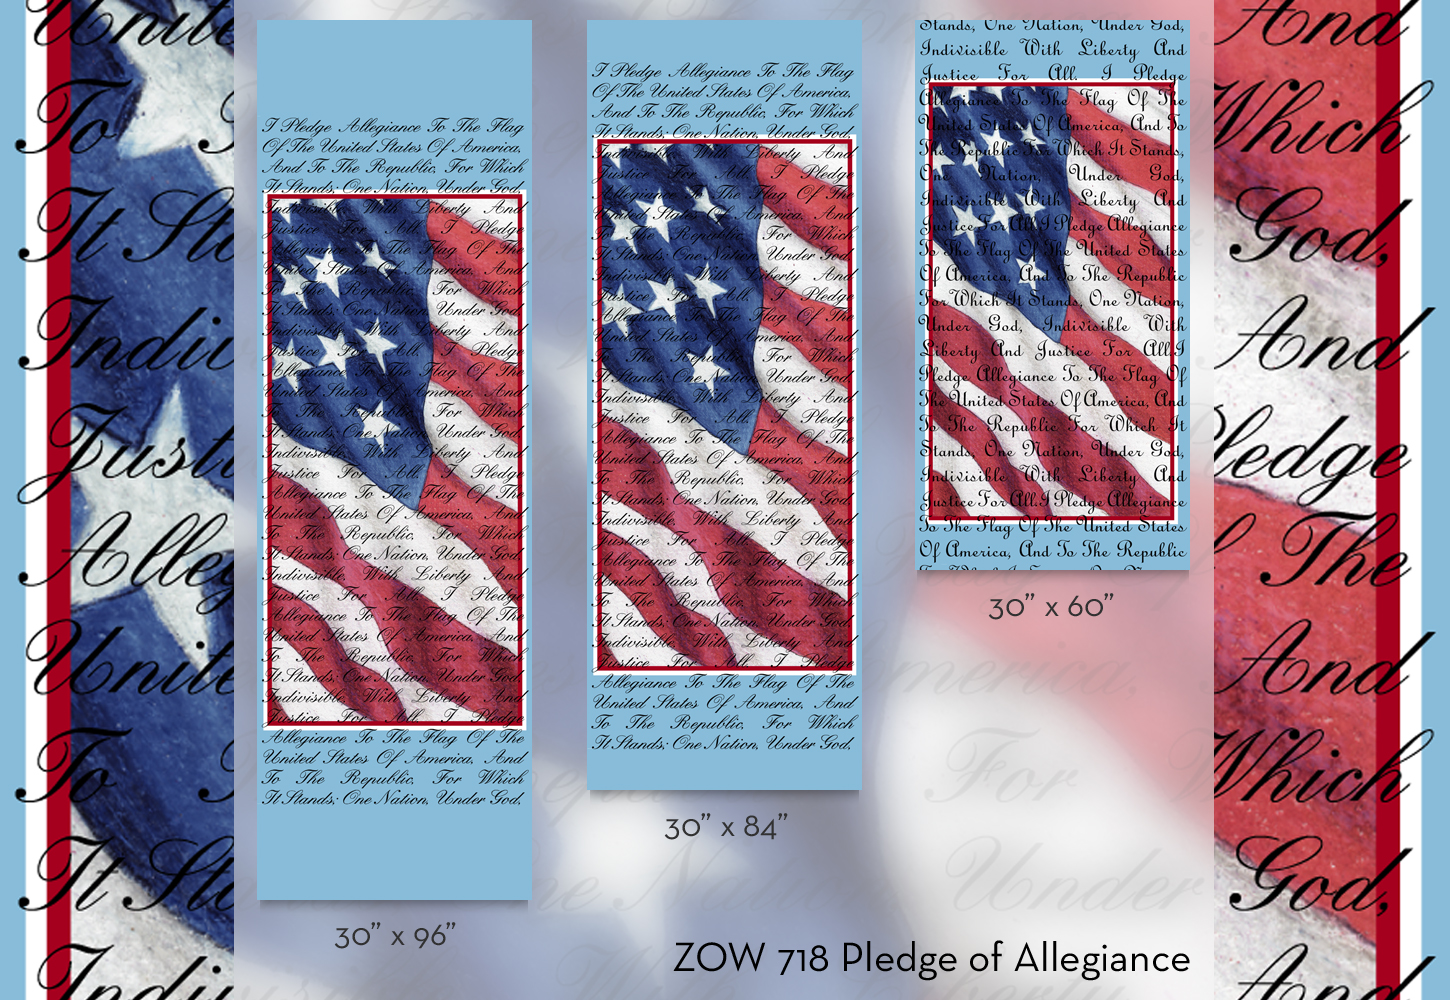 ZOW 718 Pledge of Allegiance